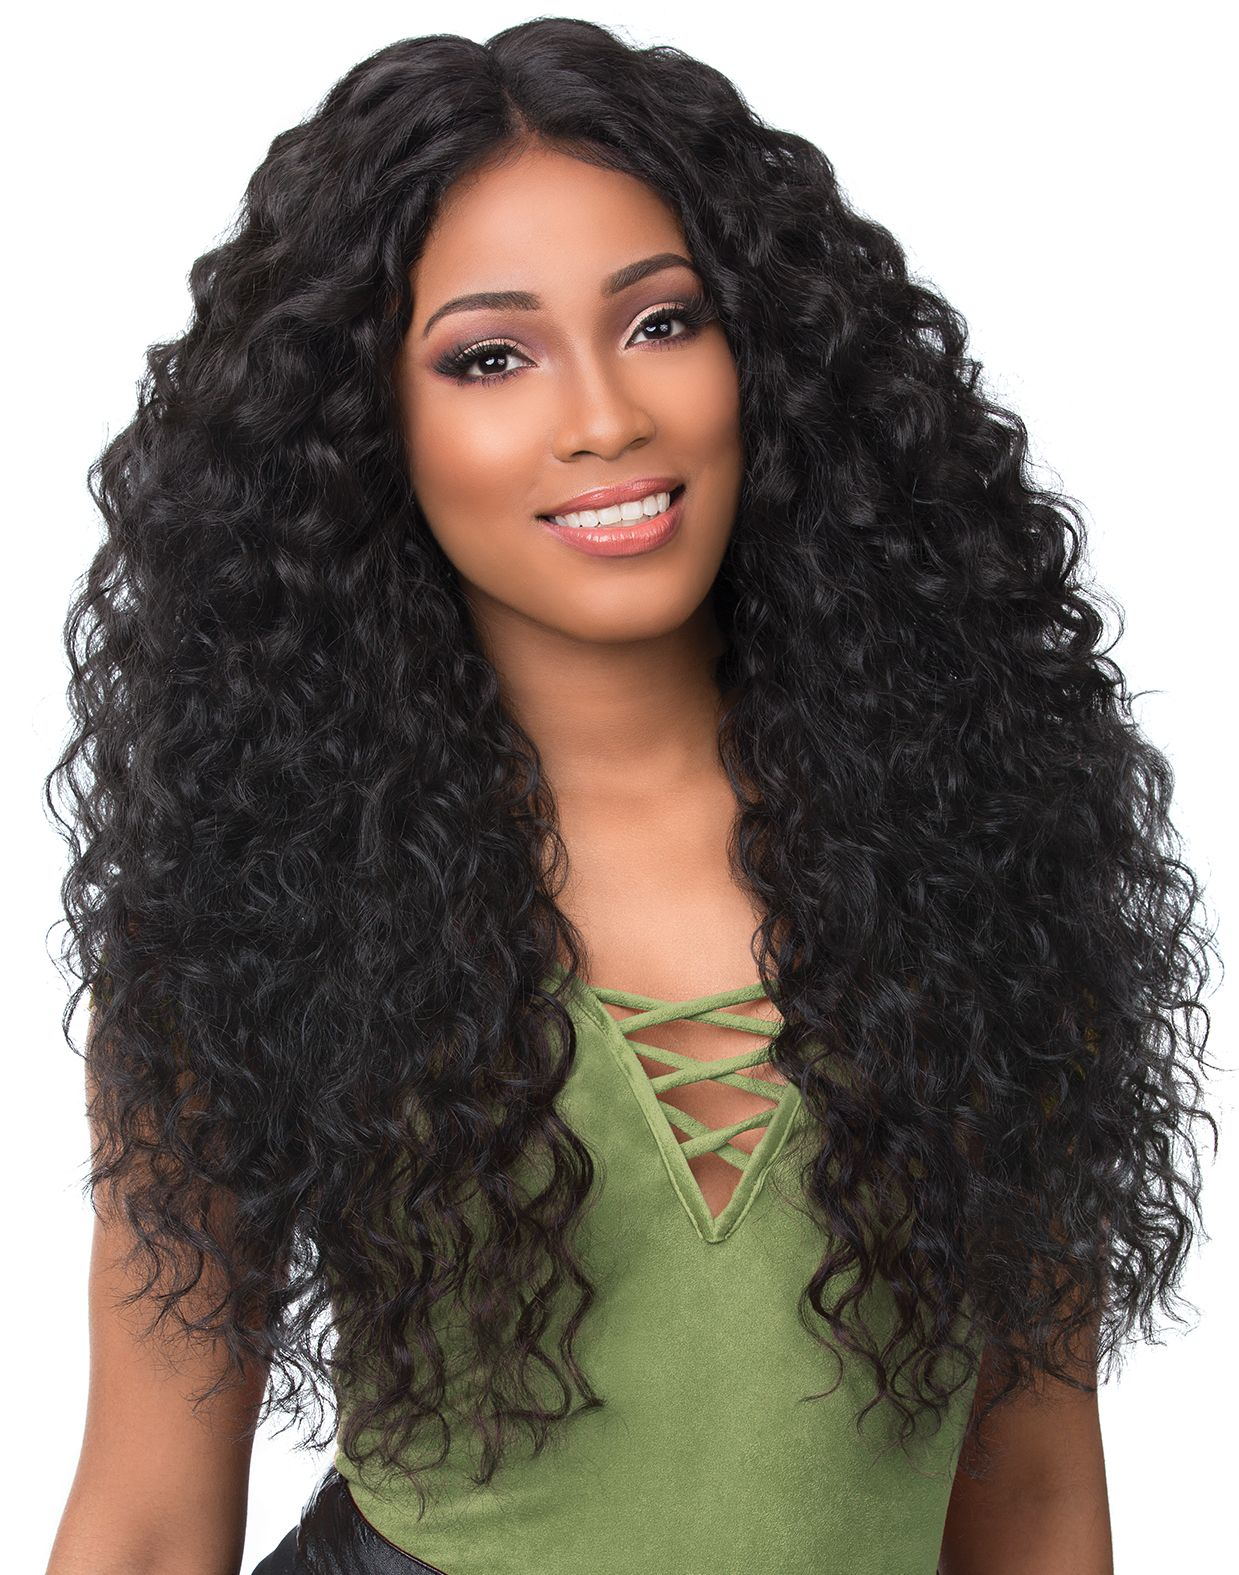 Lace Front Wigs Black Curly Hair Peruvian Deep Curly Hair Highest Rated Wigs Loose Wave Wig